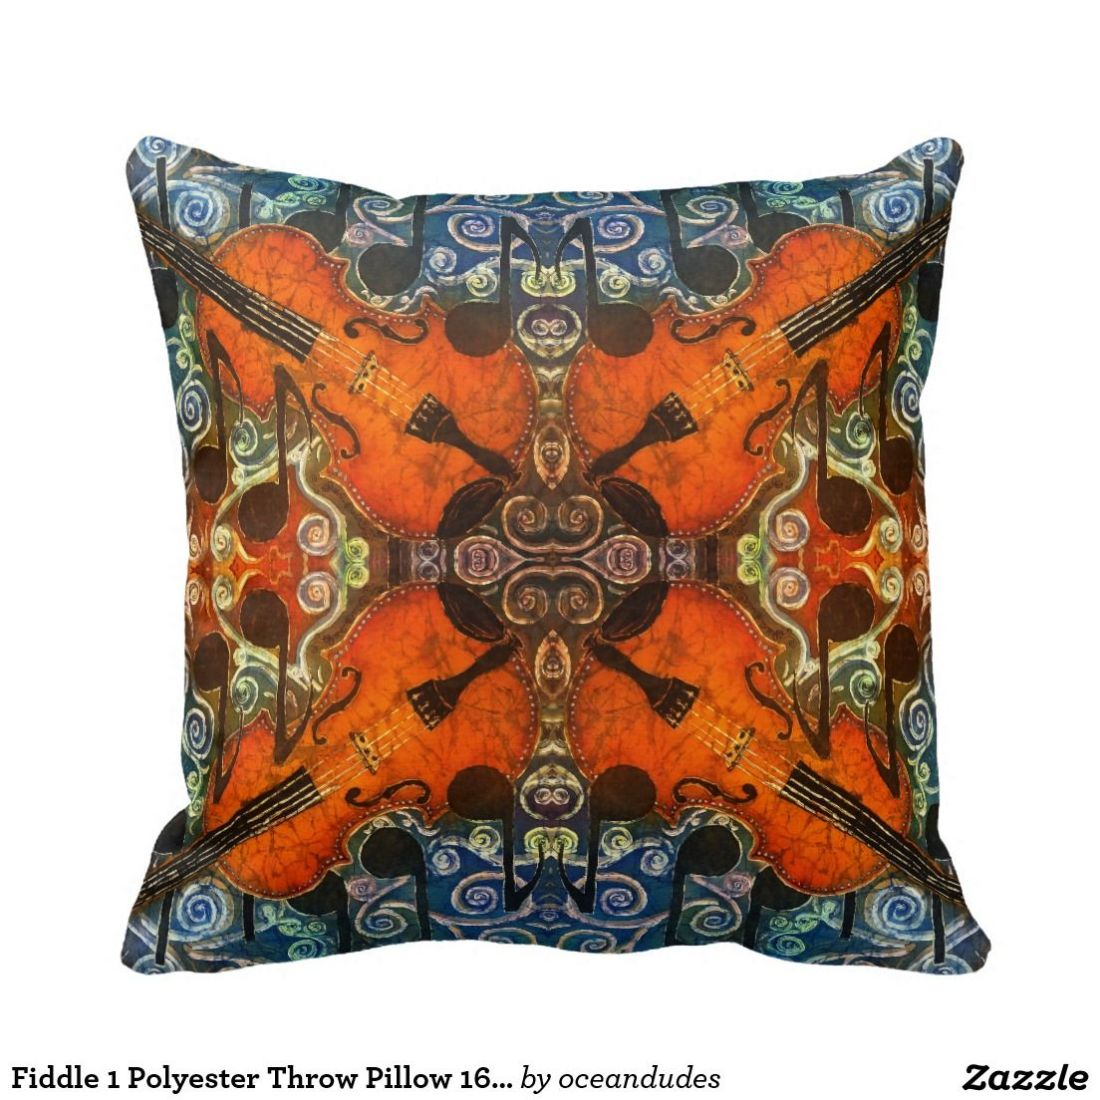 Fiddle 1 polyester throw pillow 16 x 16